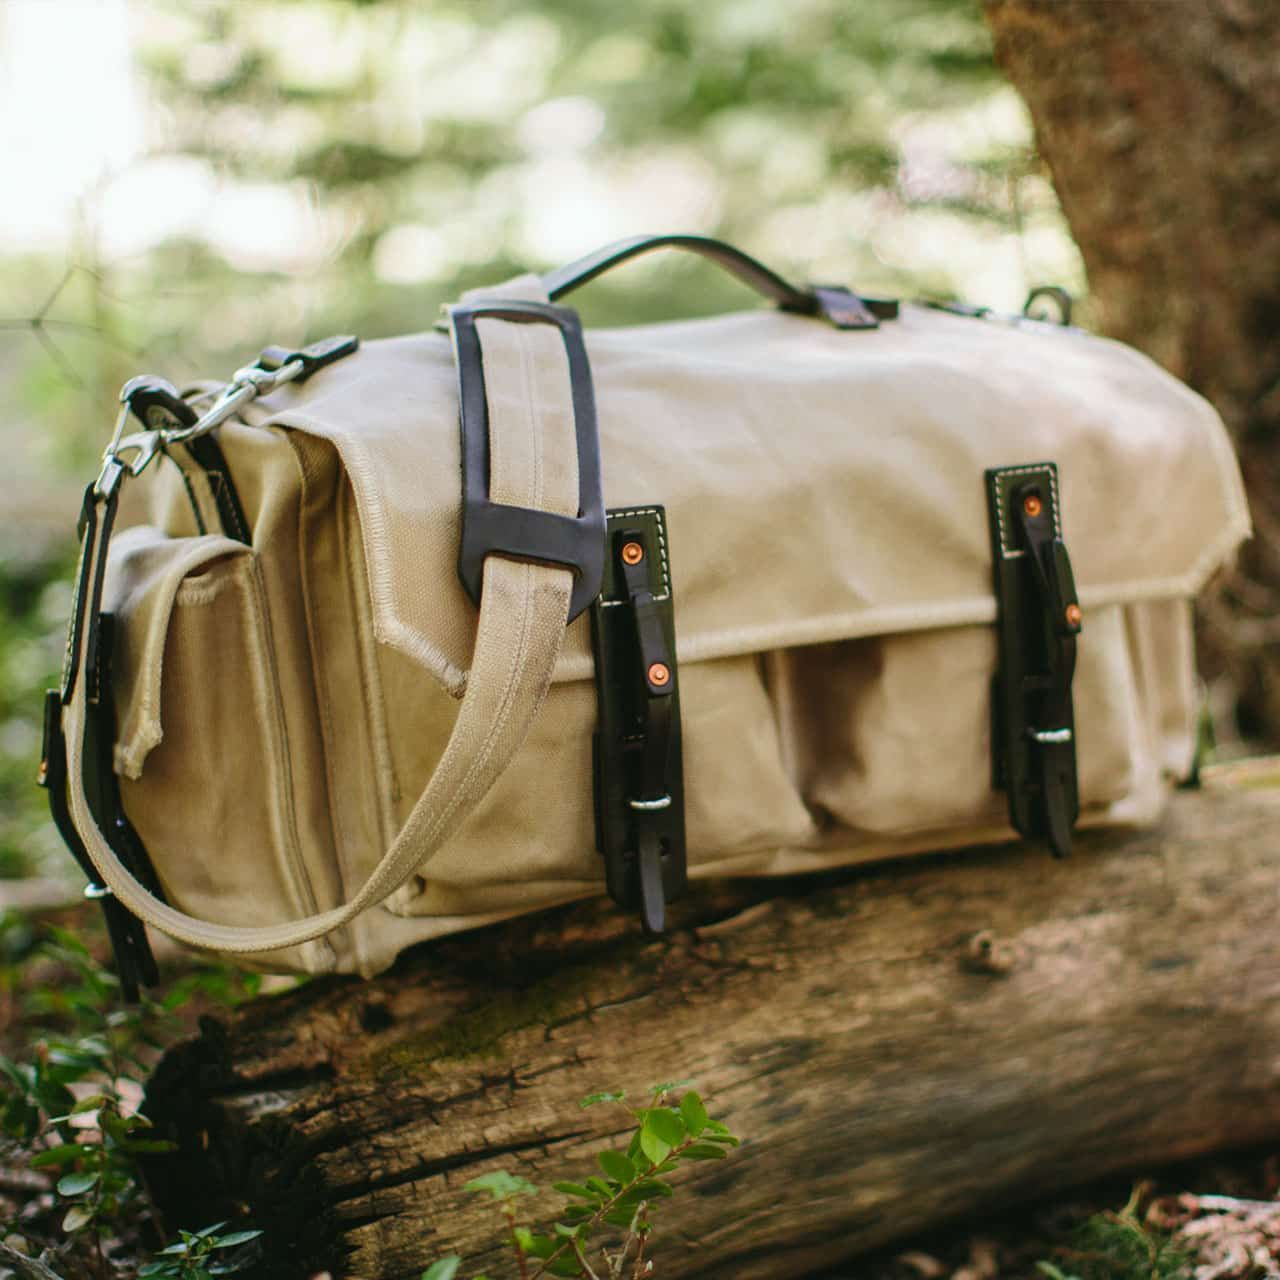 5 Pocket Duffel in Color Sand sitting on a Log